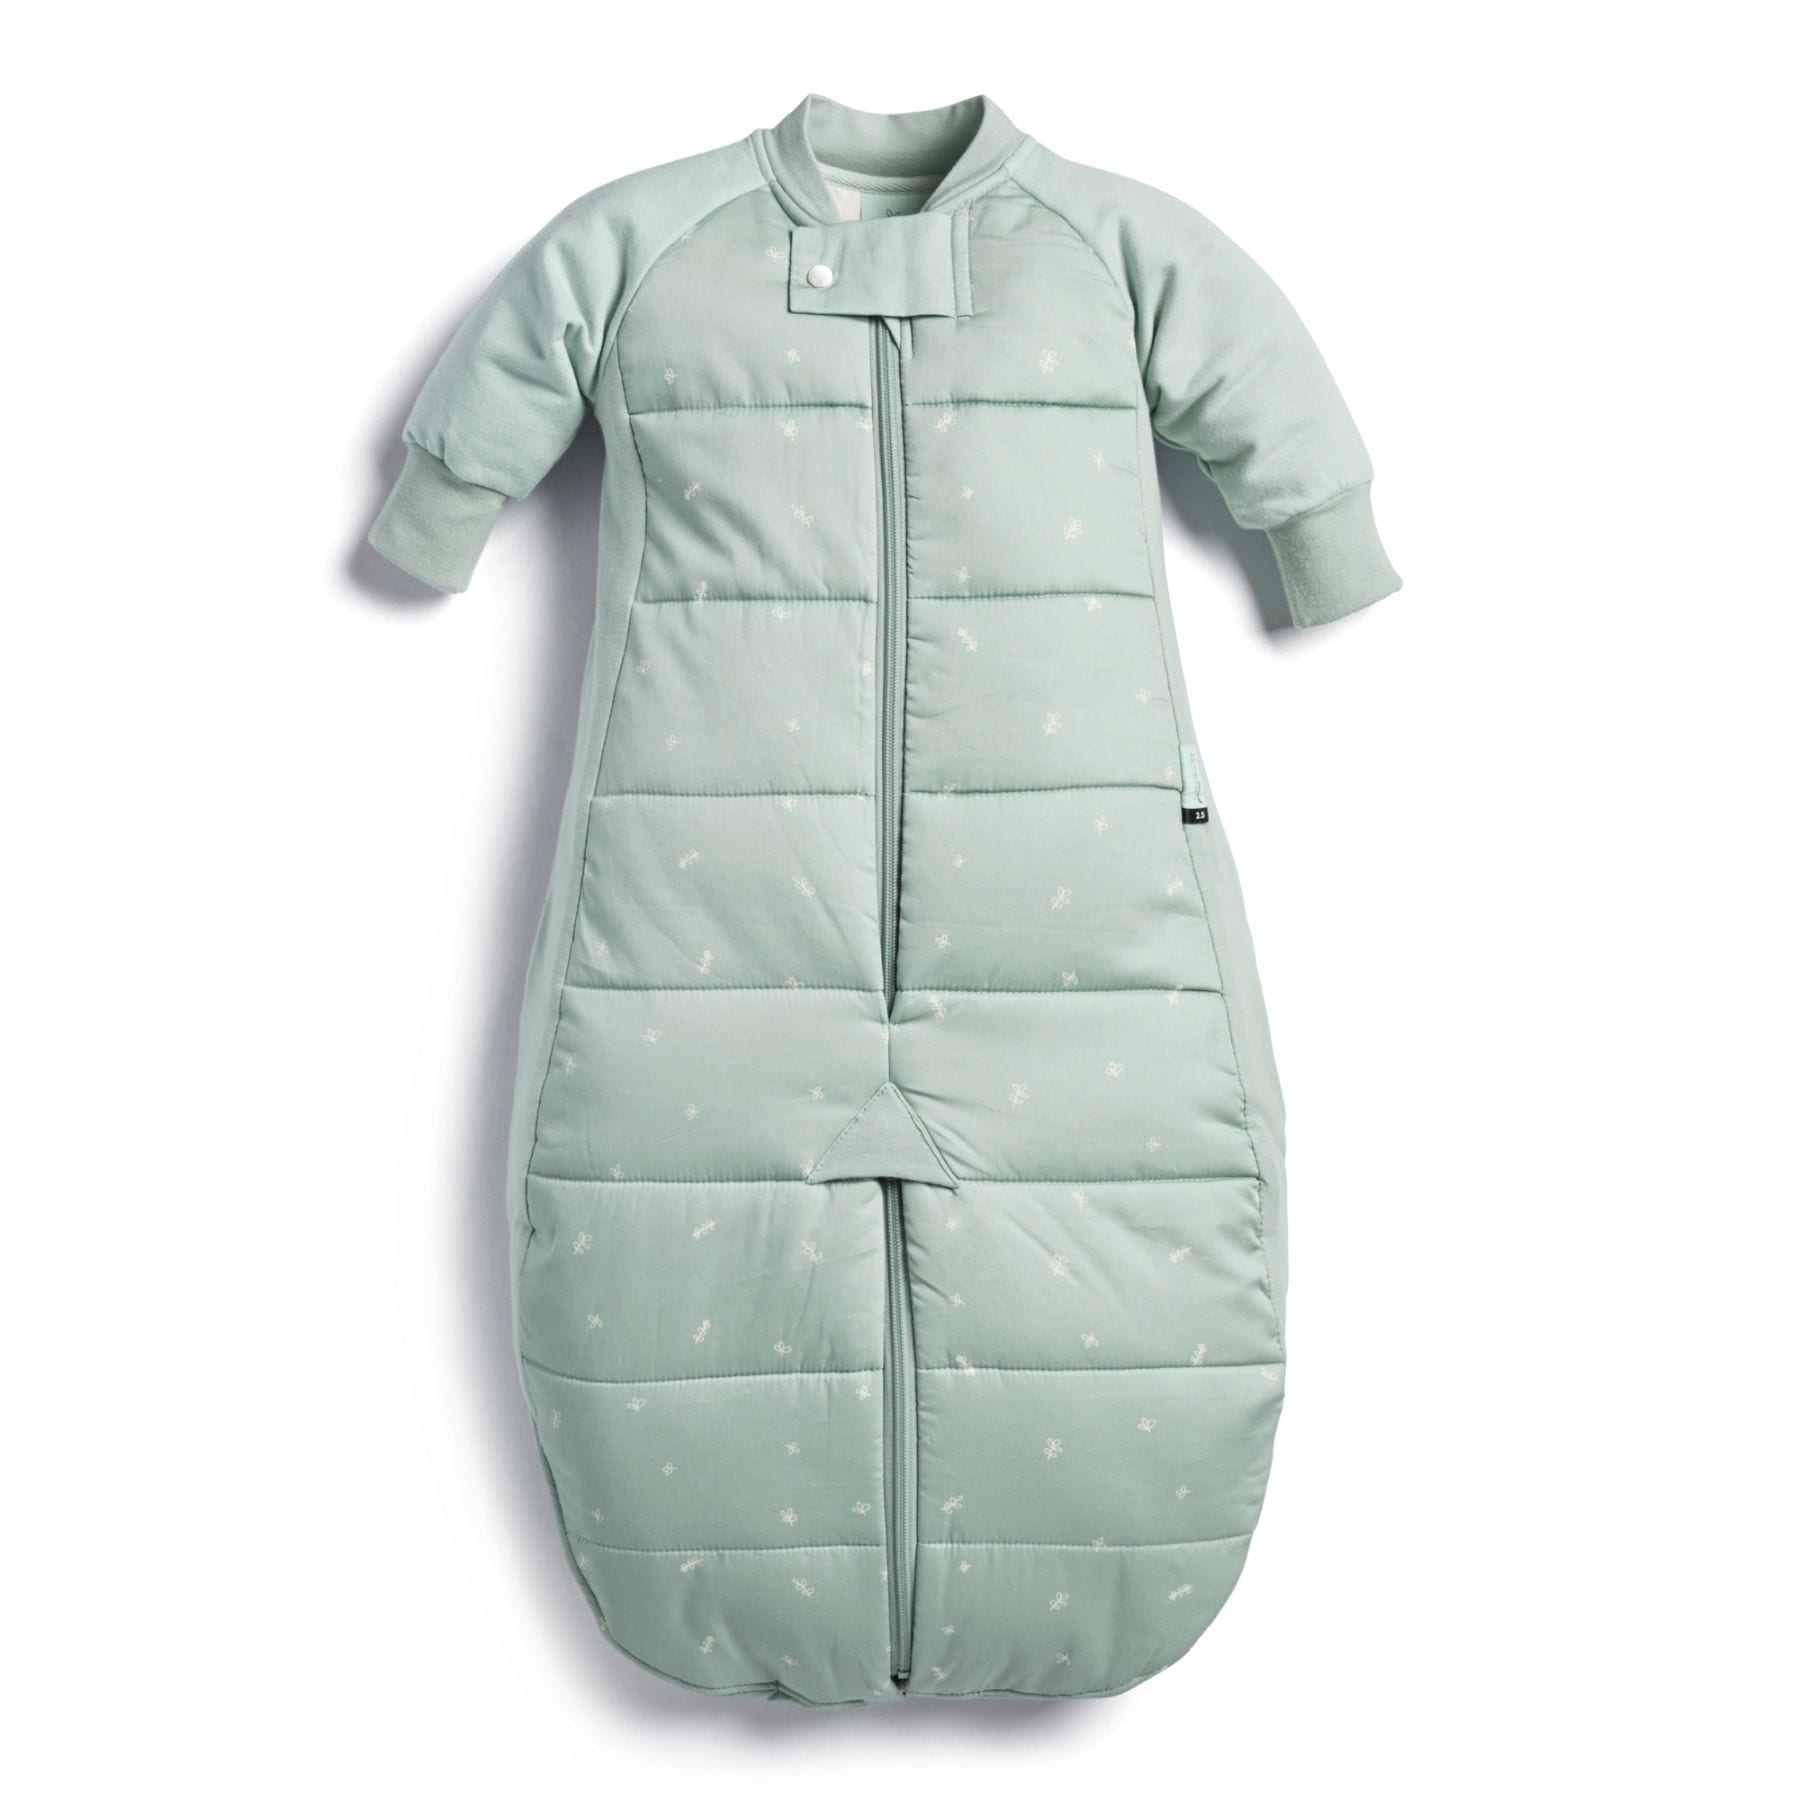 Ergopouch 2.5 TOG Sleep Suit Bag - Sage